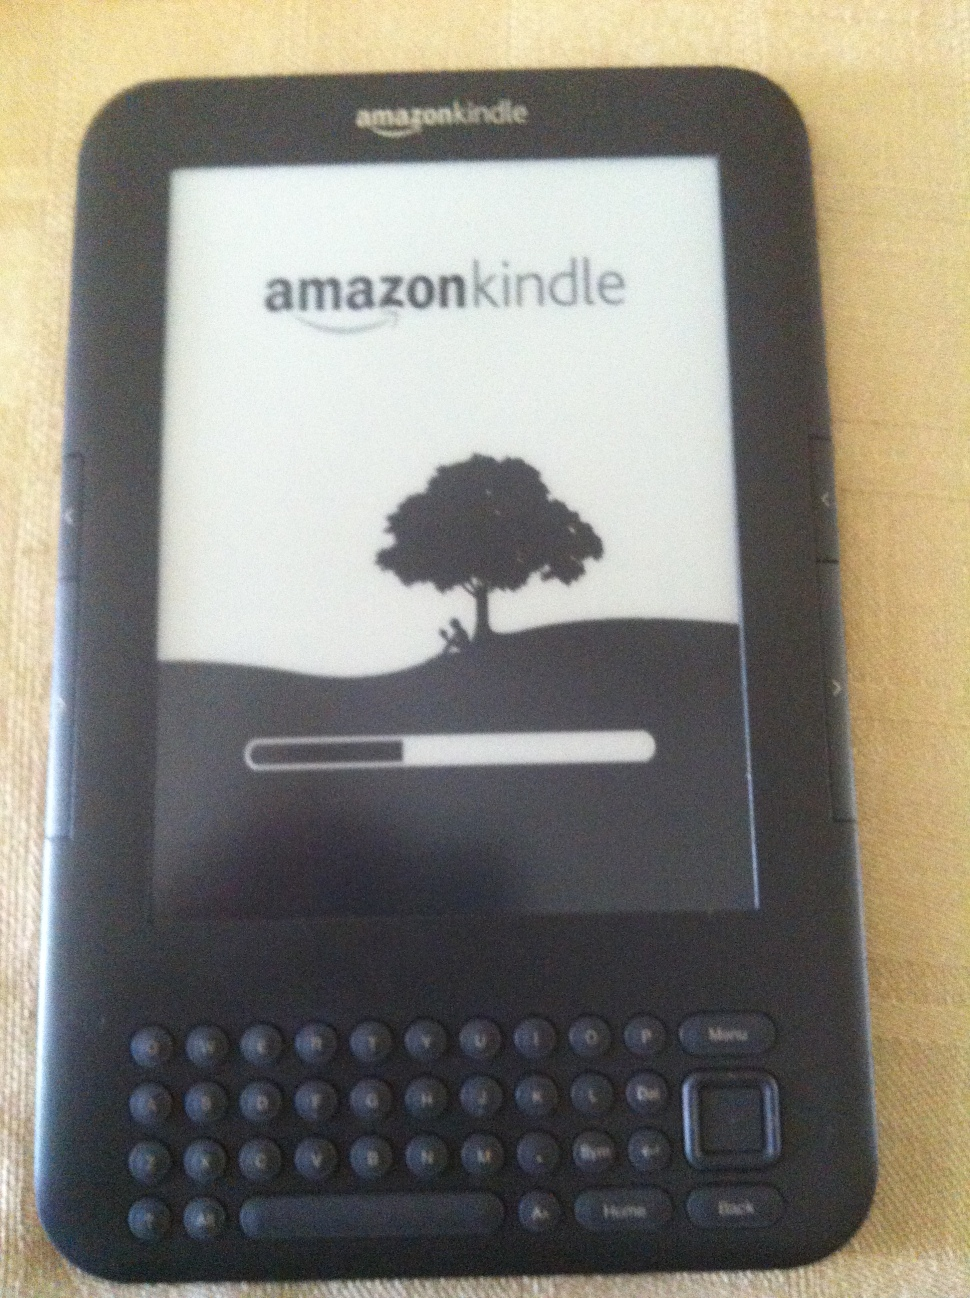 Amazon Kindle broken screen fixed.